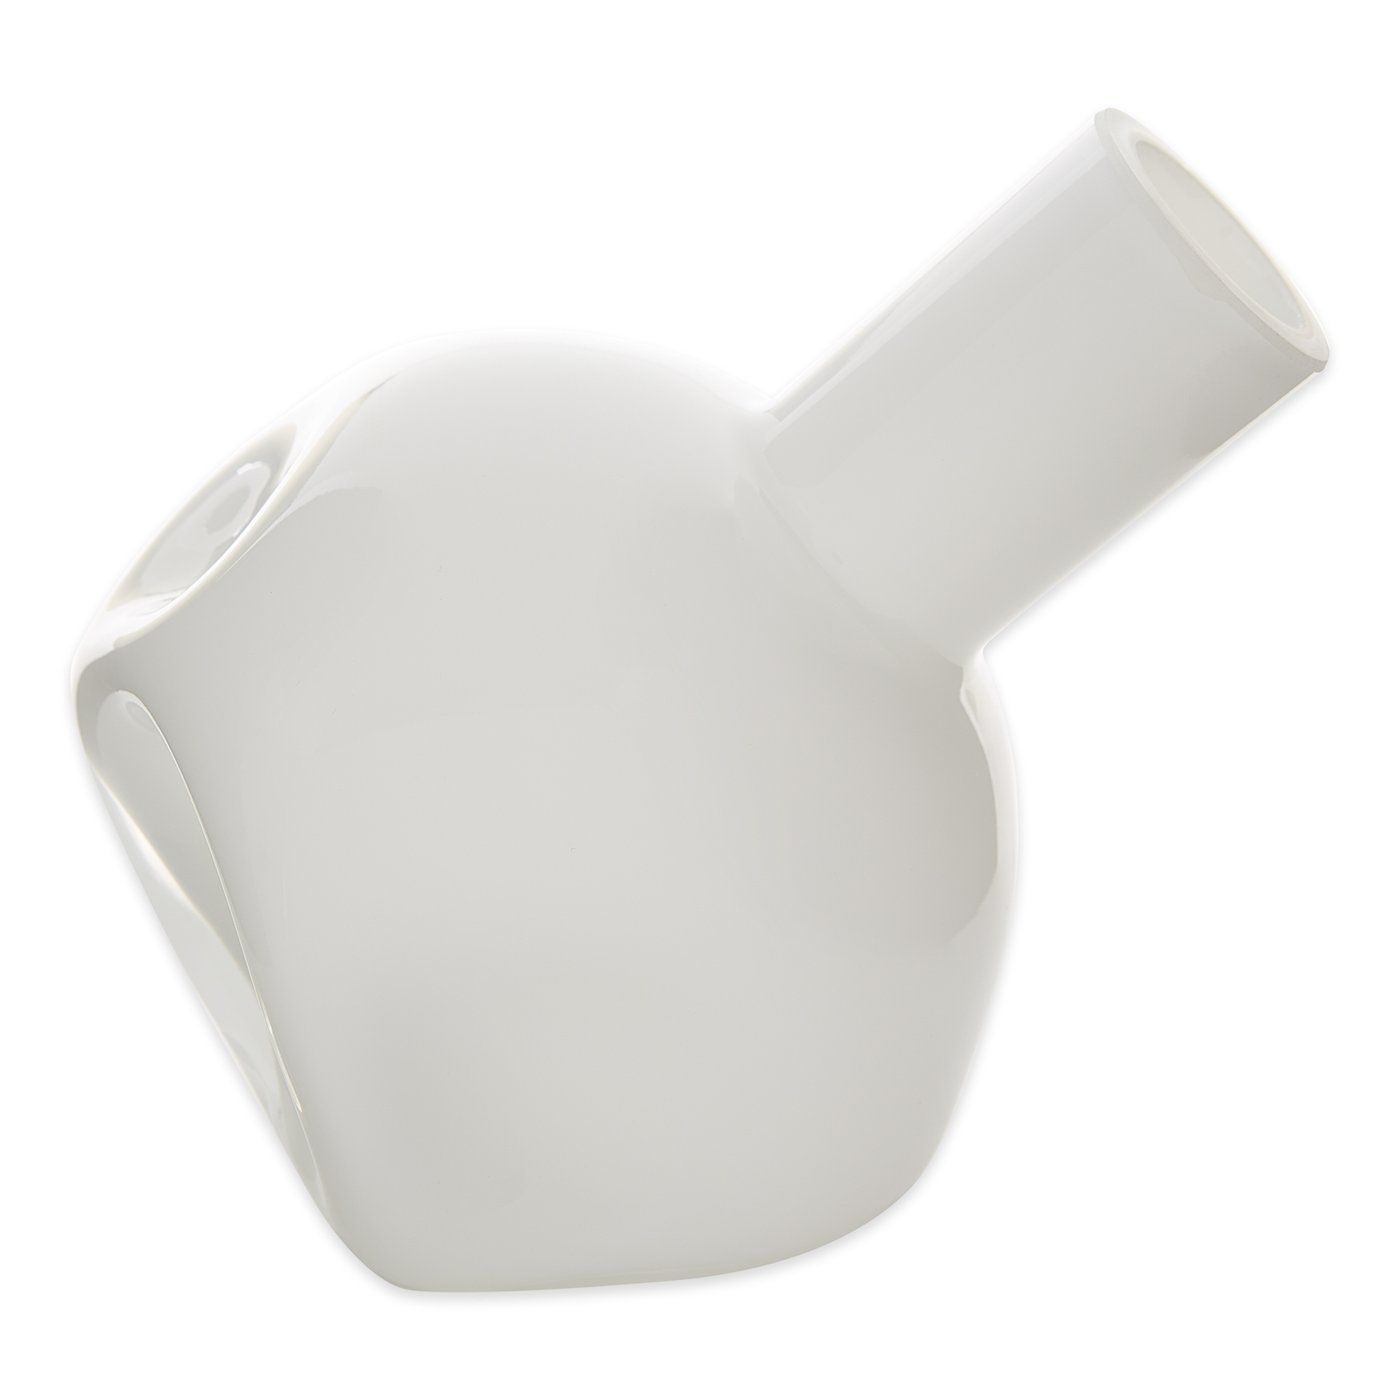 Primary image for Accent Plus White Abstract Vase